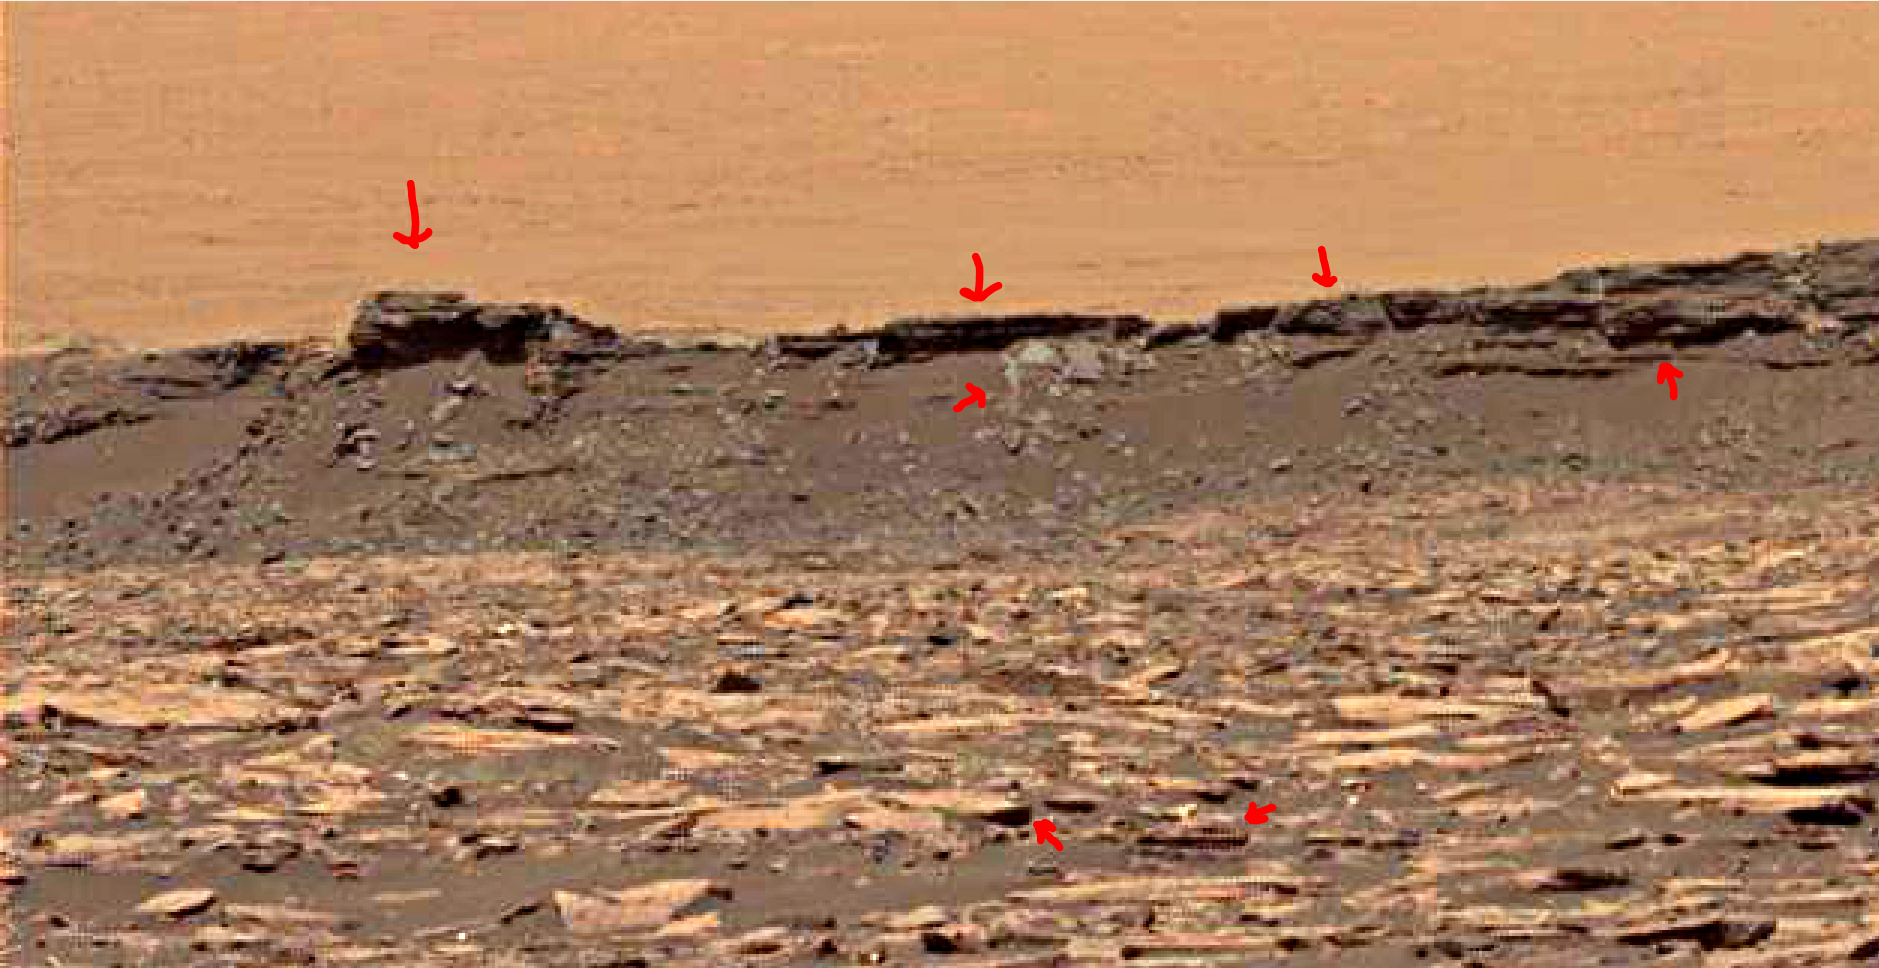 mars-sol-1507-anomaly-artifacts-10-was-life-on-mars